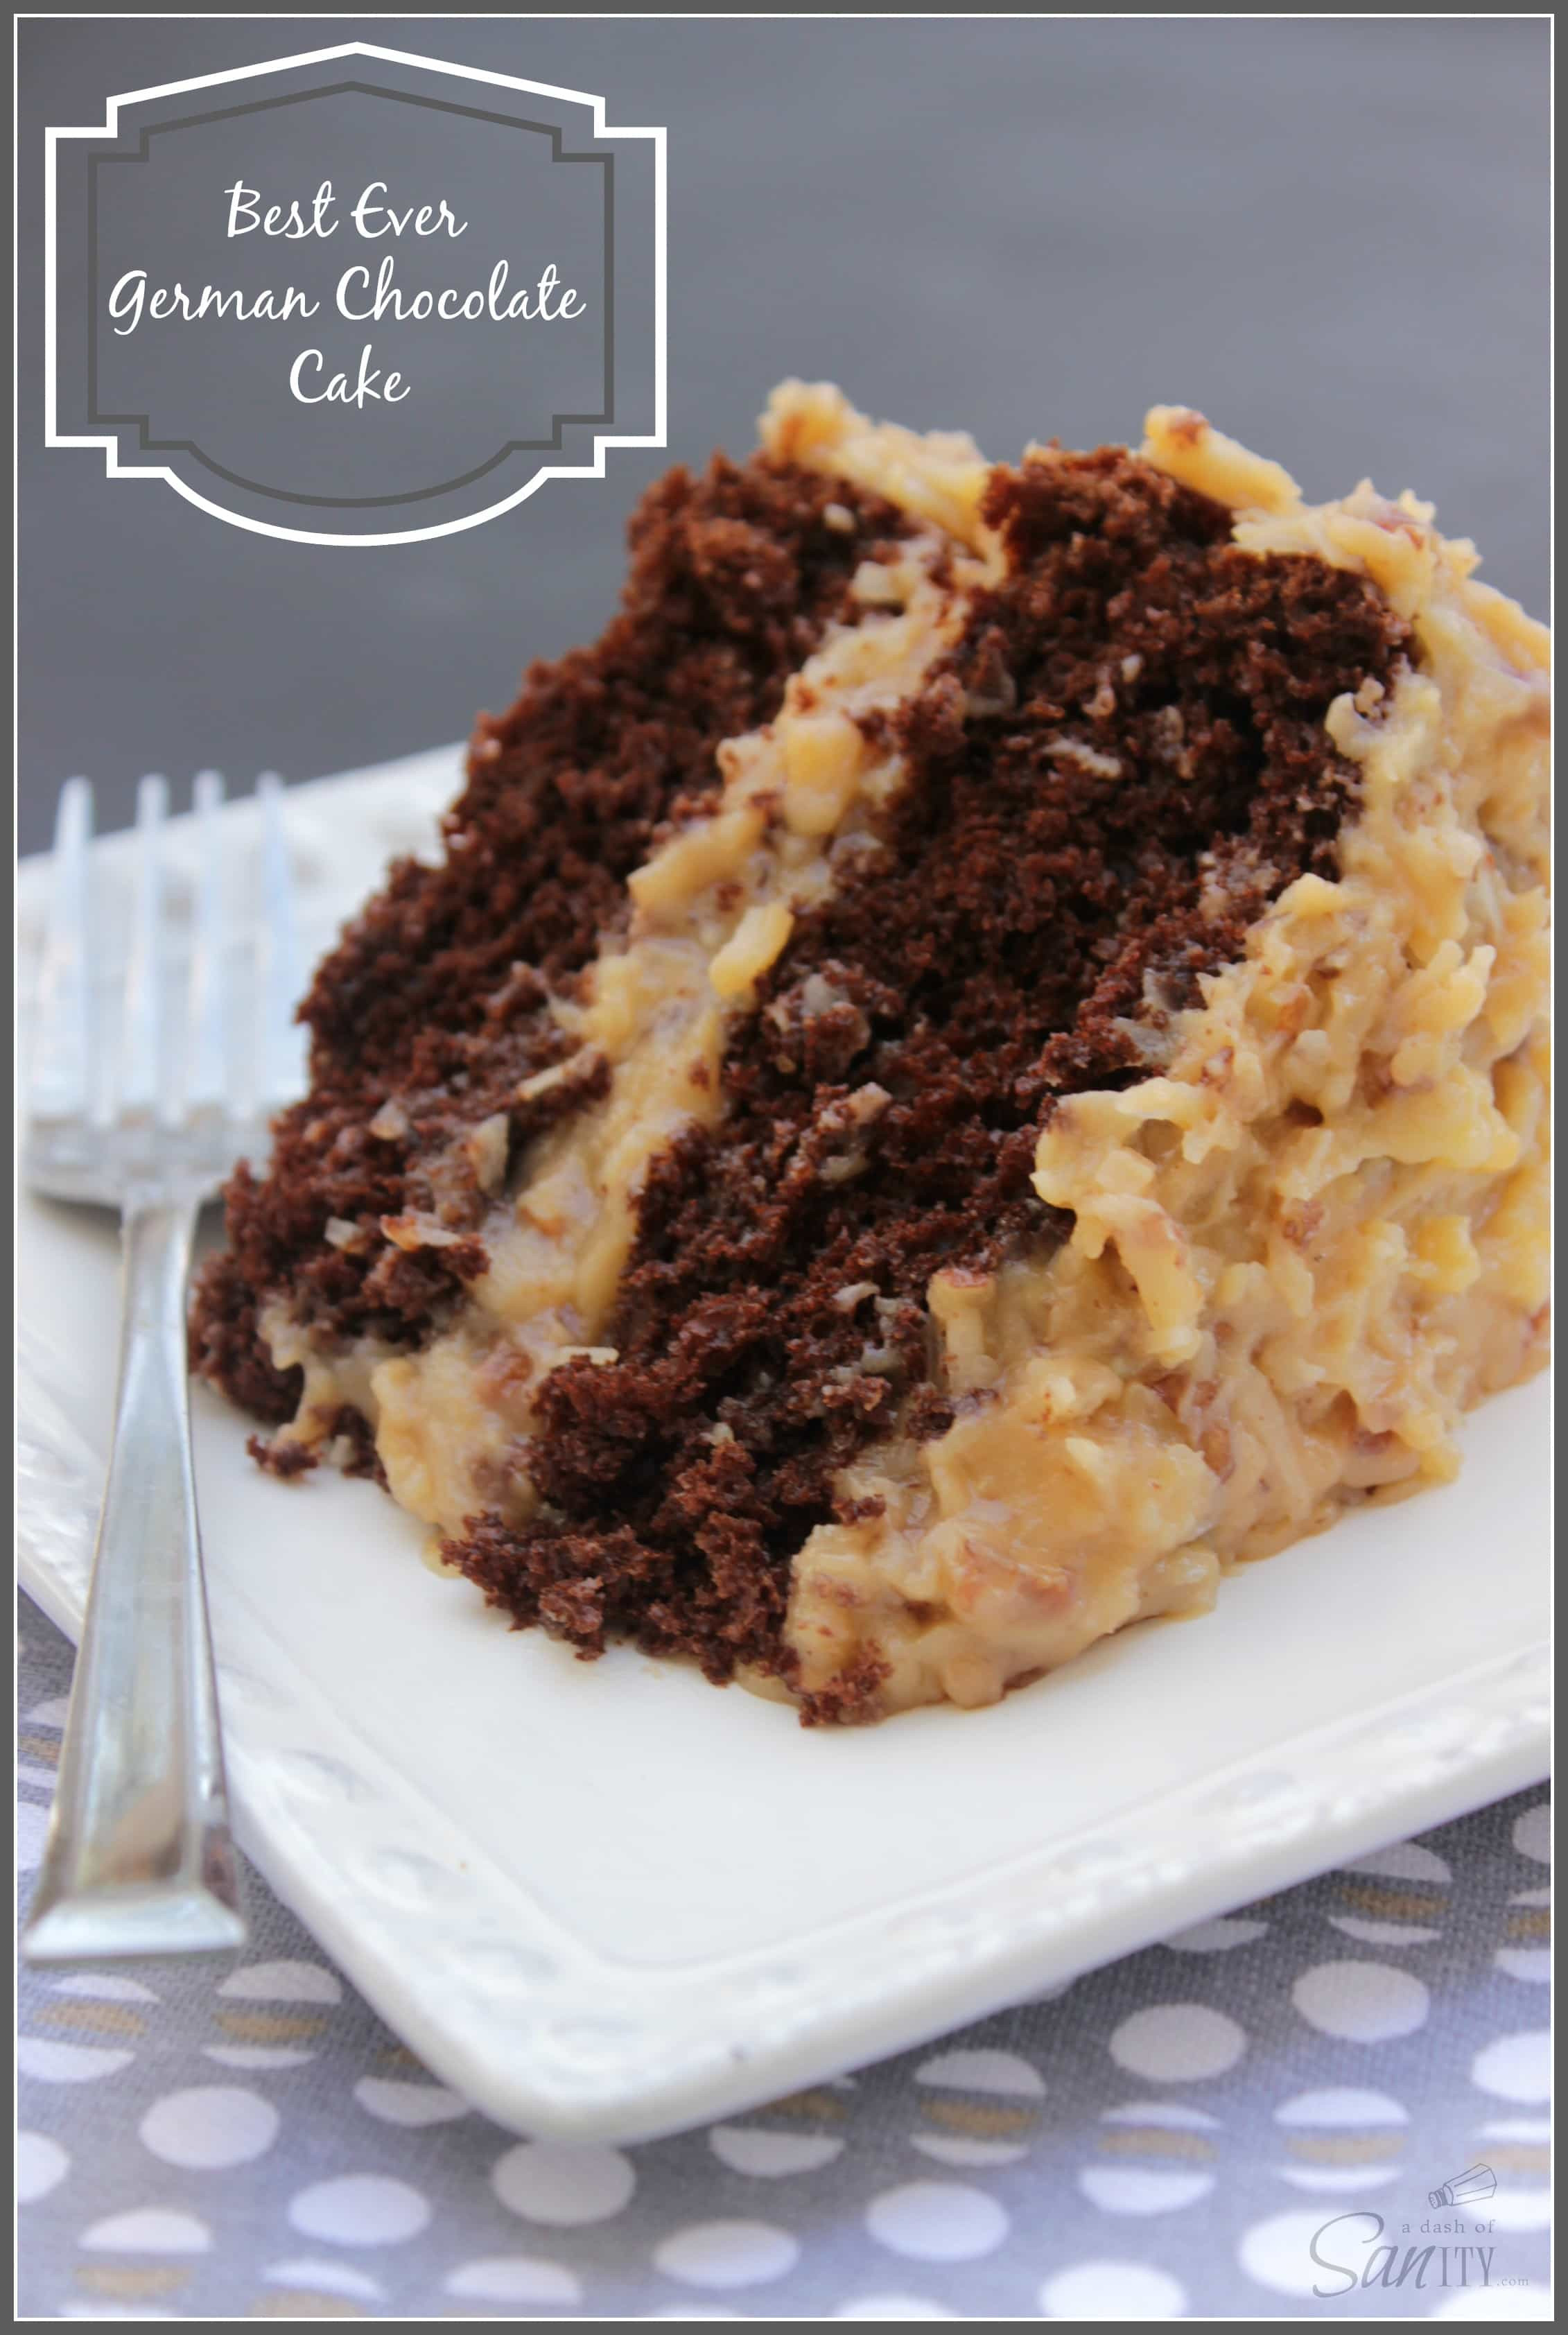 Best Frosting For Chocolate Cake  Best Ever German Chocolate Cake